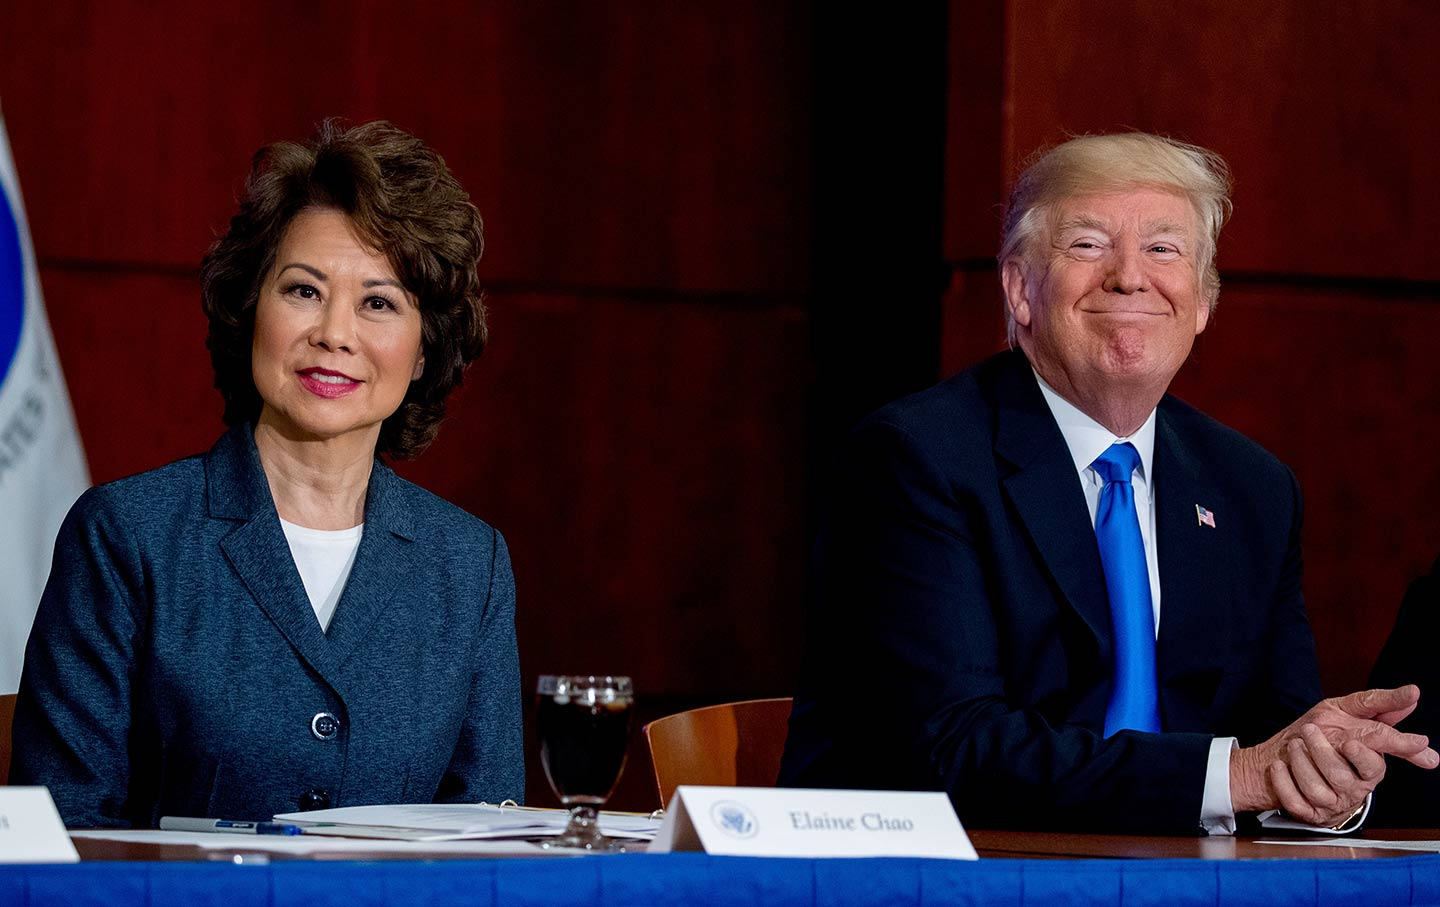 Chao and Trump